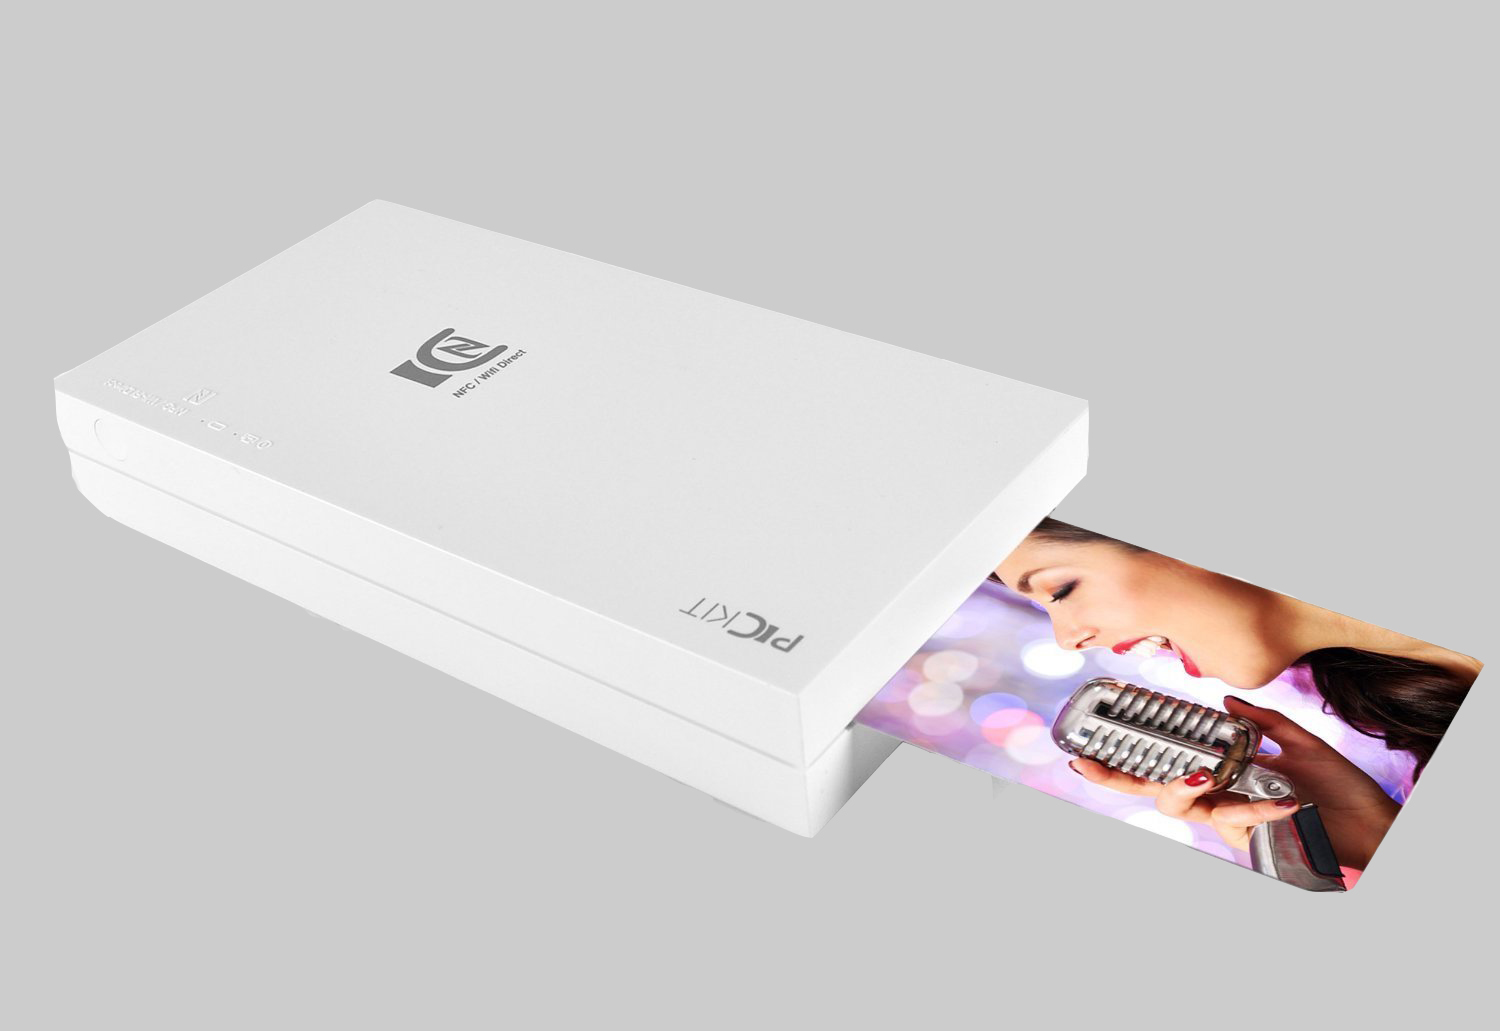 instant photos are hip again and pyle joins the trend with a new portable printer